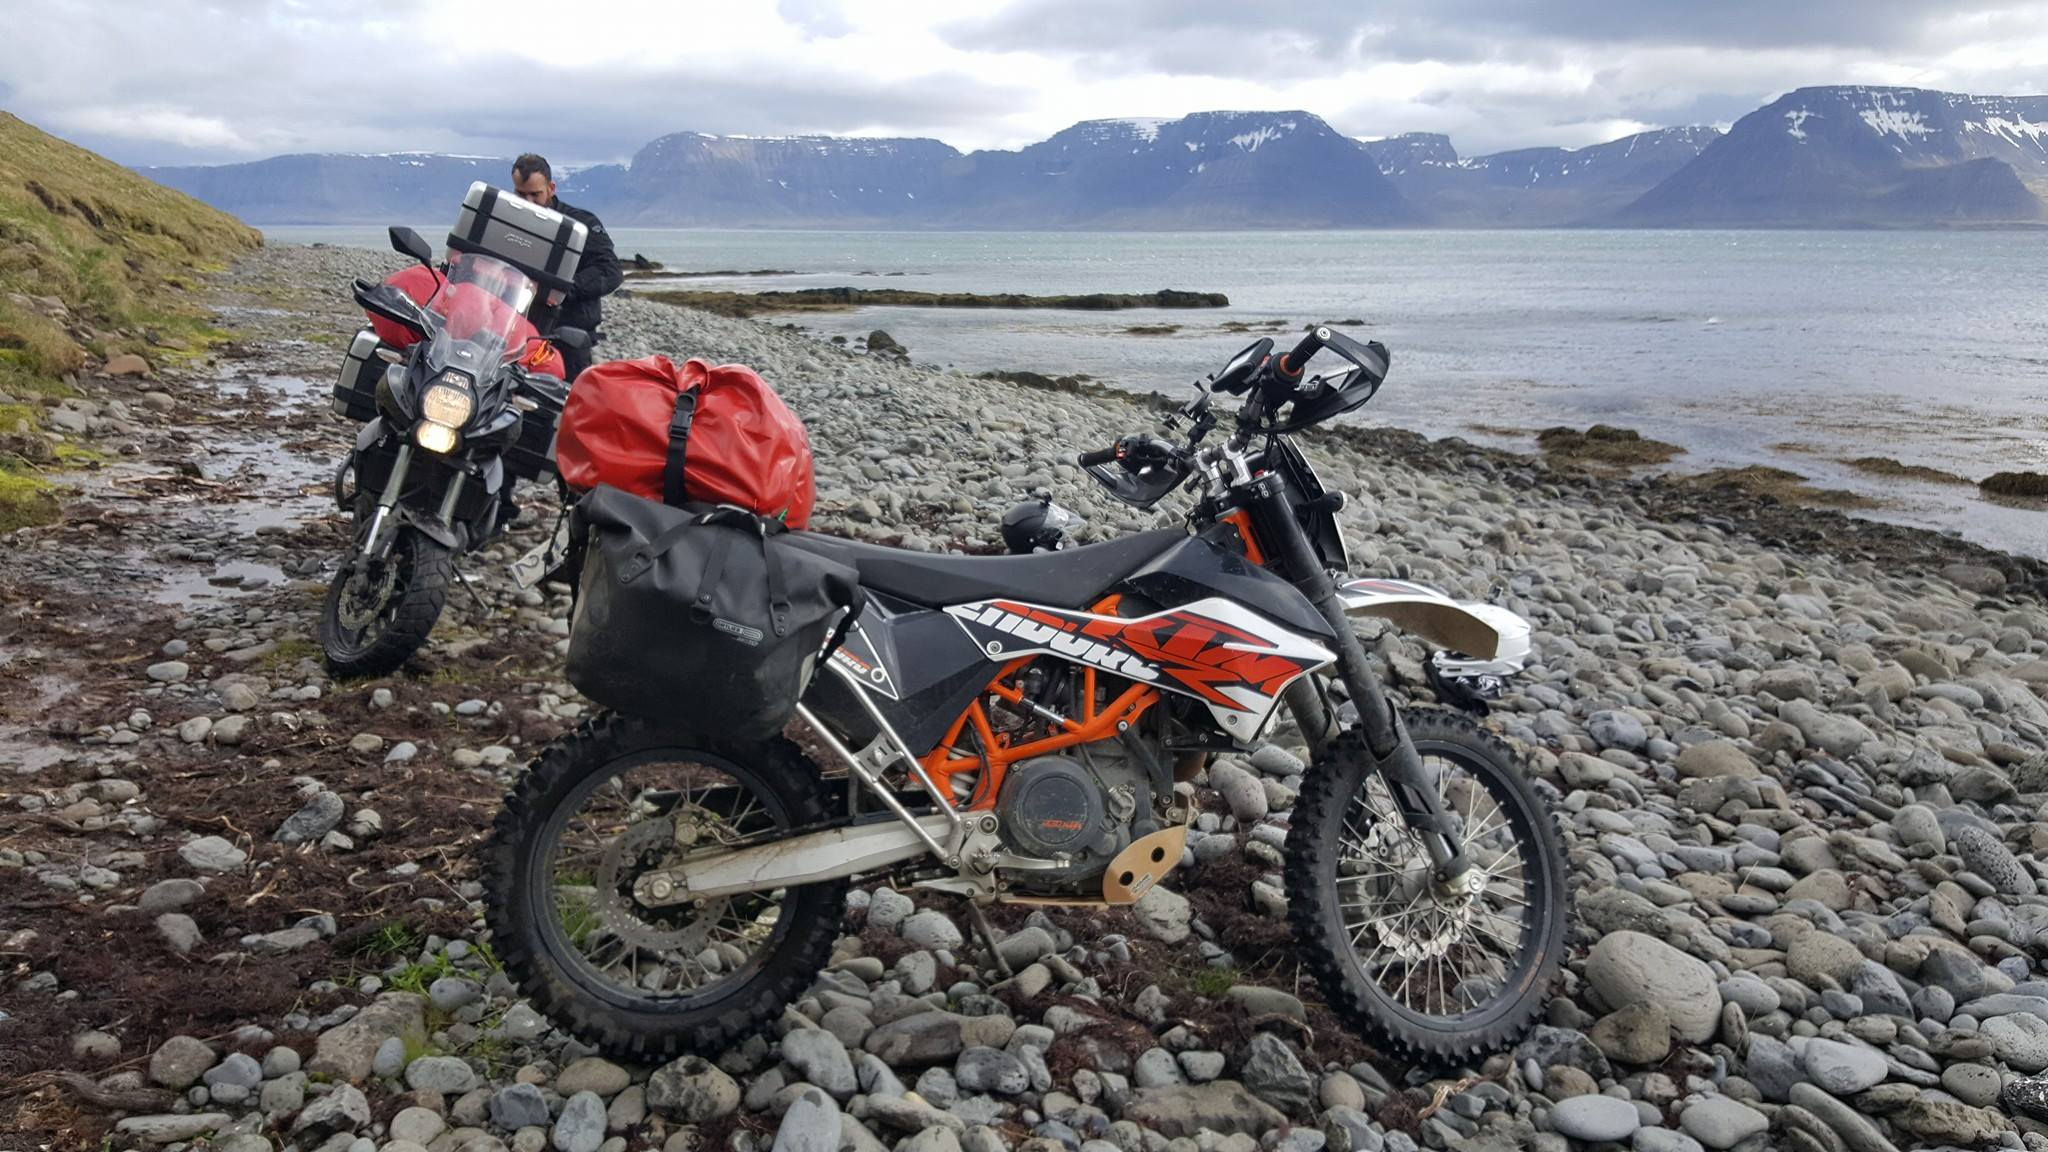 Deep fjords offer incredibly scenic routes to drive.